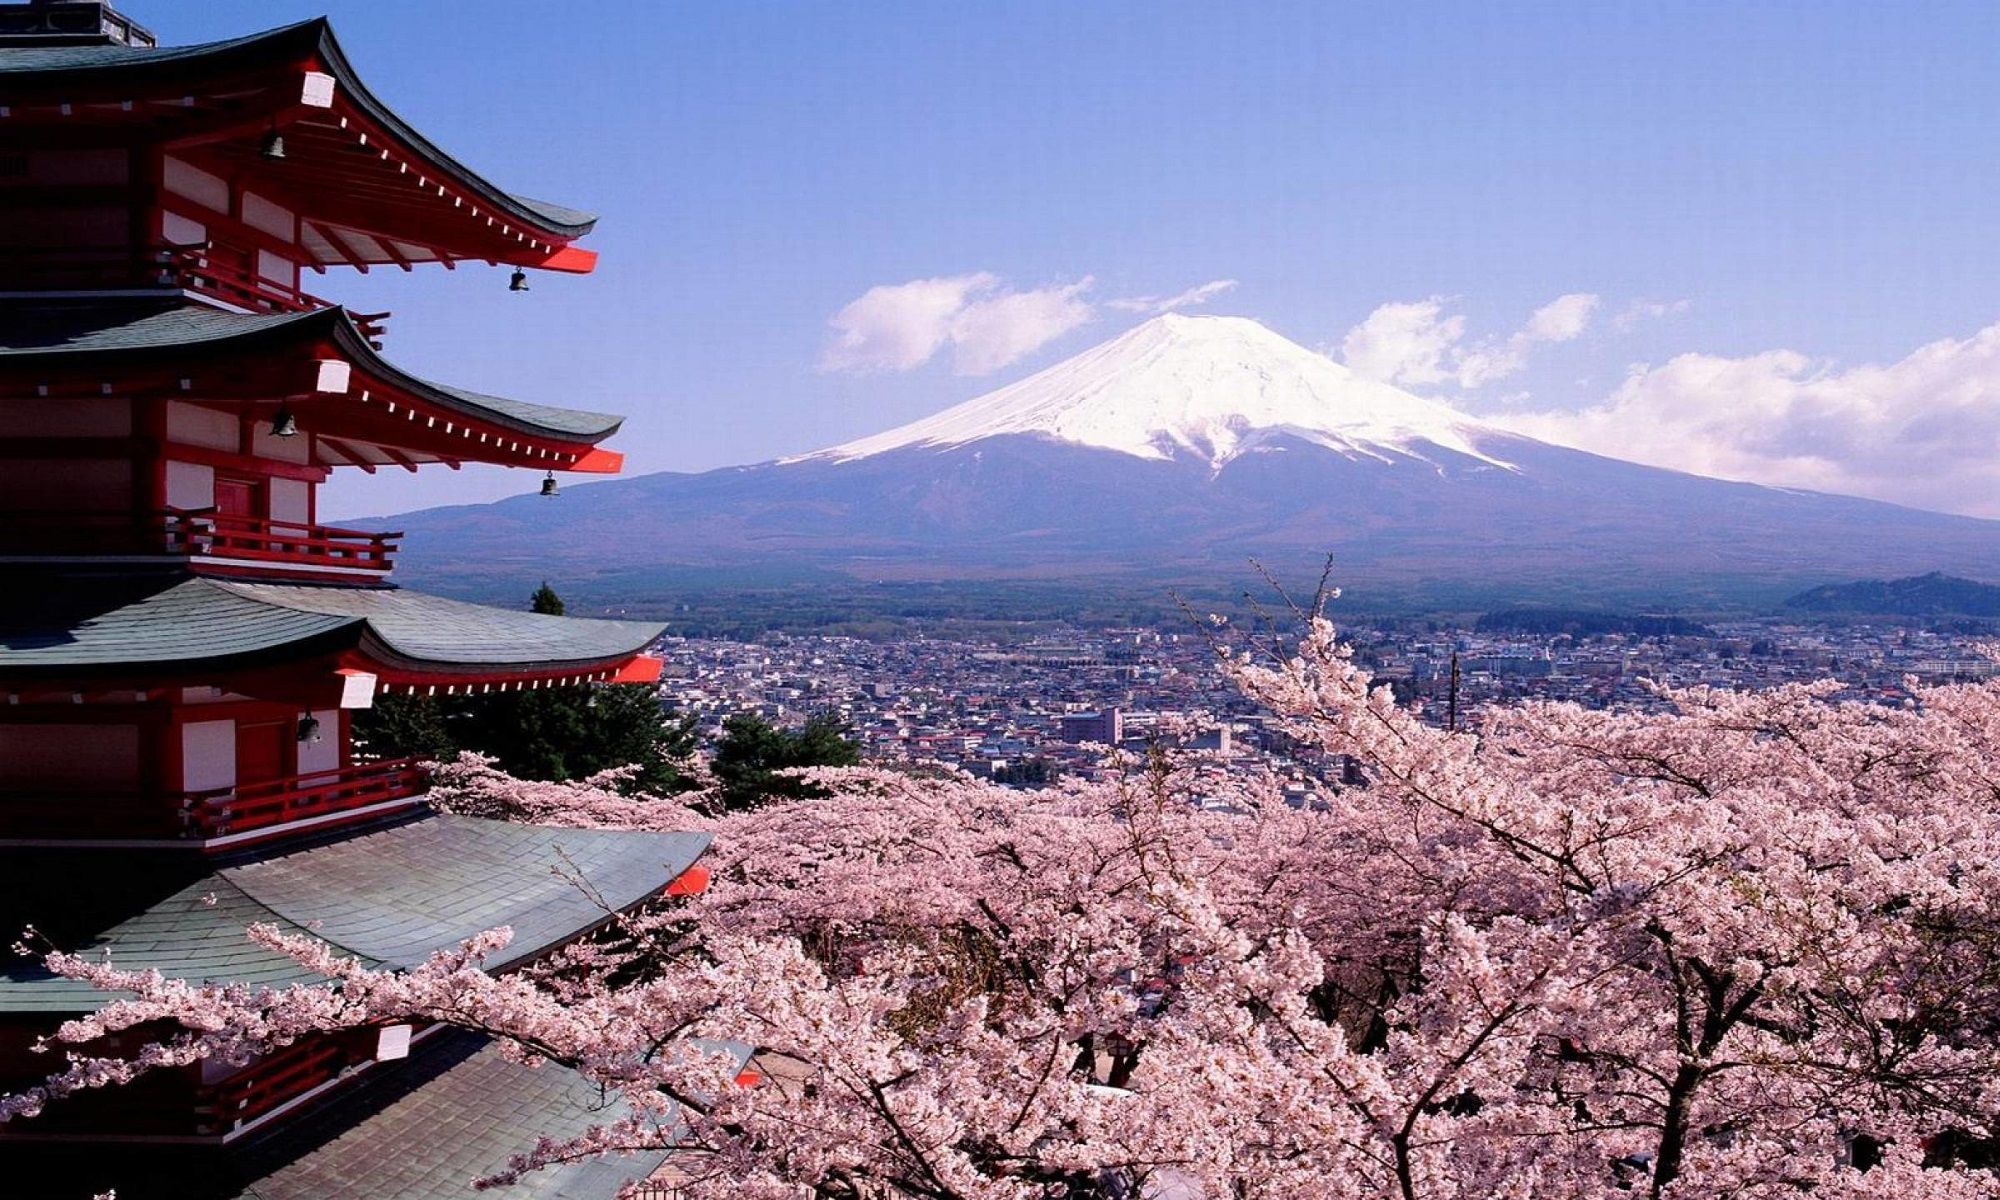 Fuji mountain and sakura panorama.